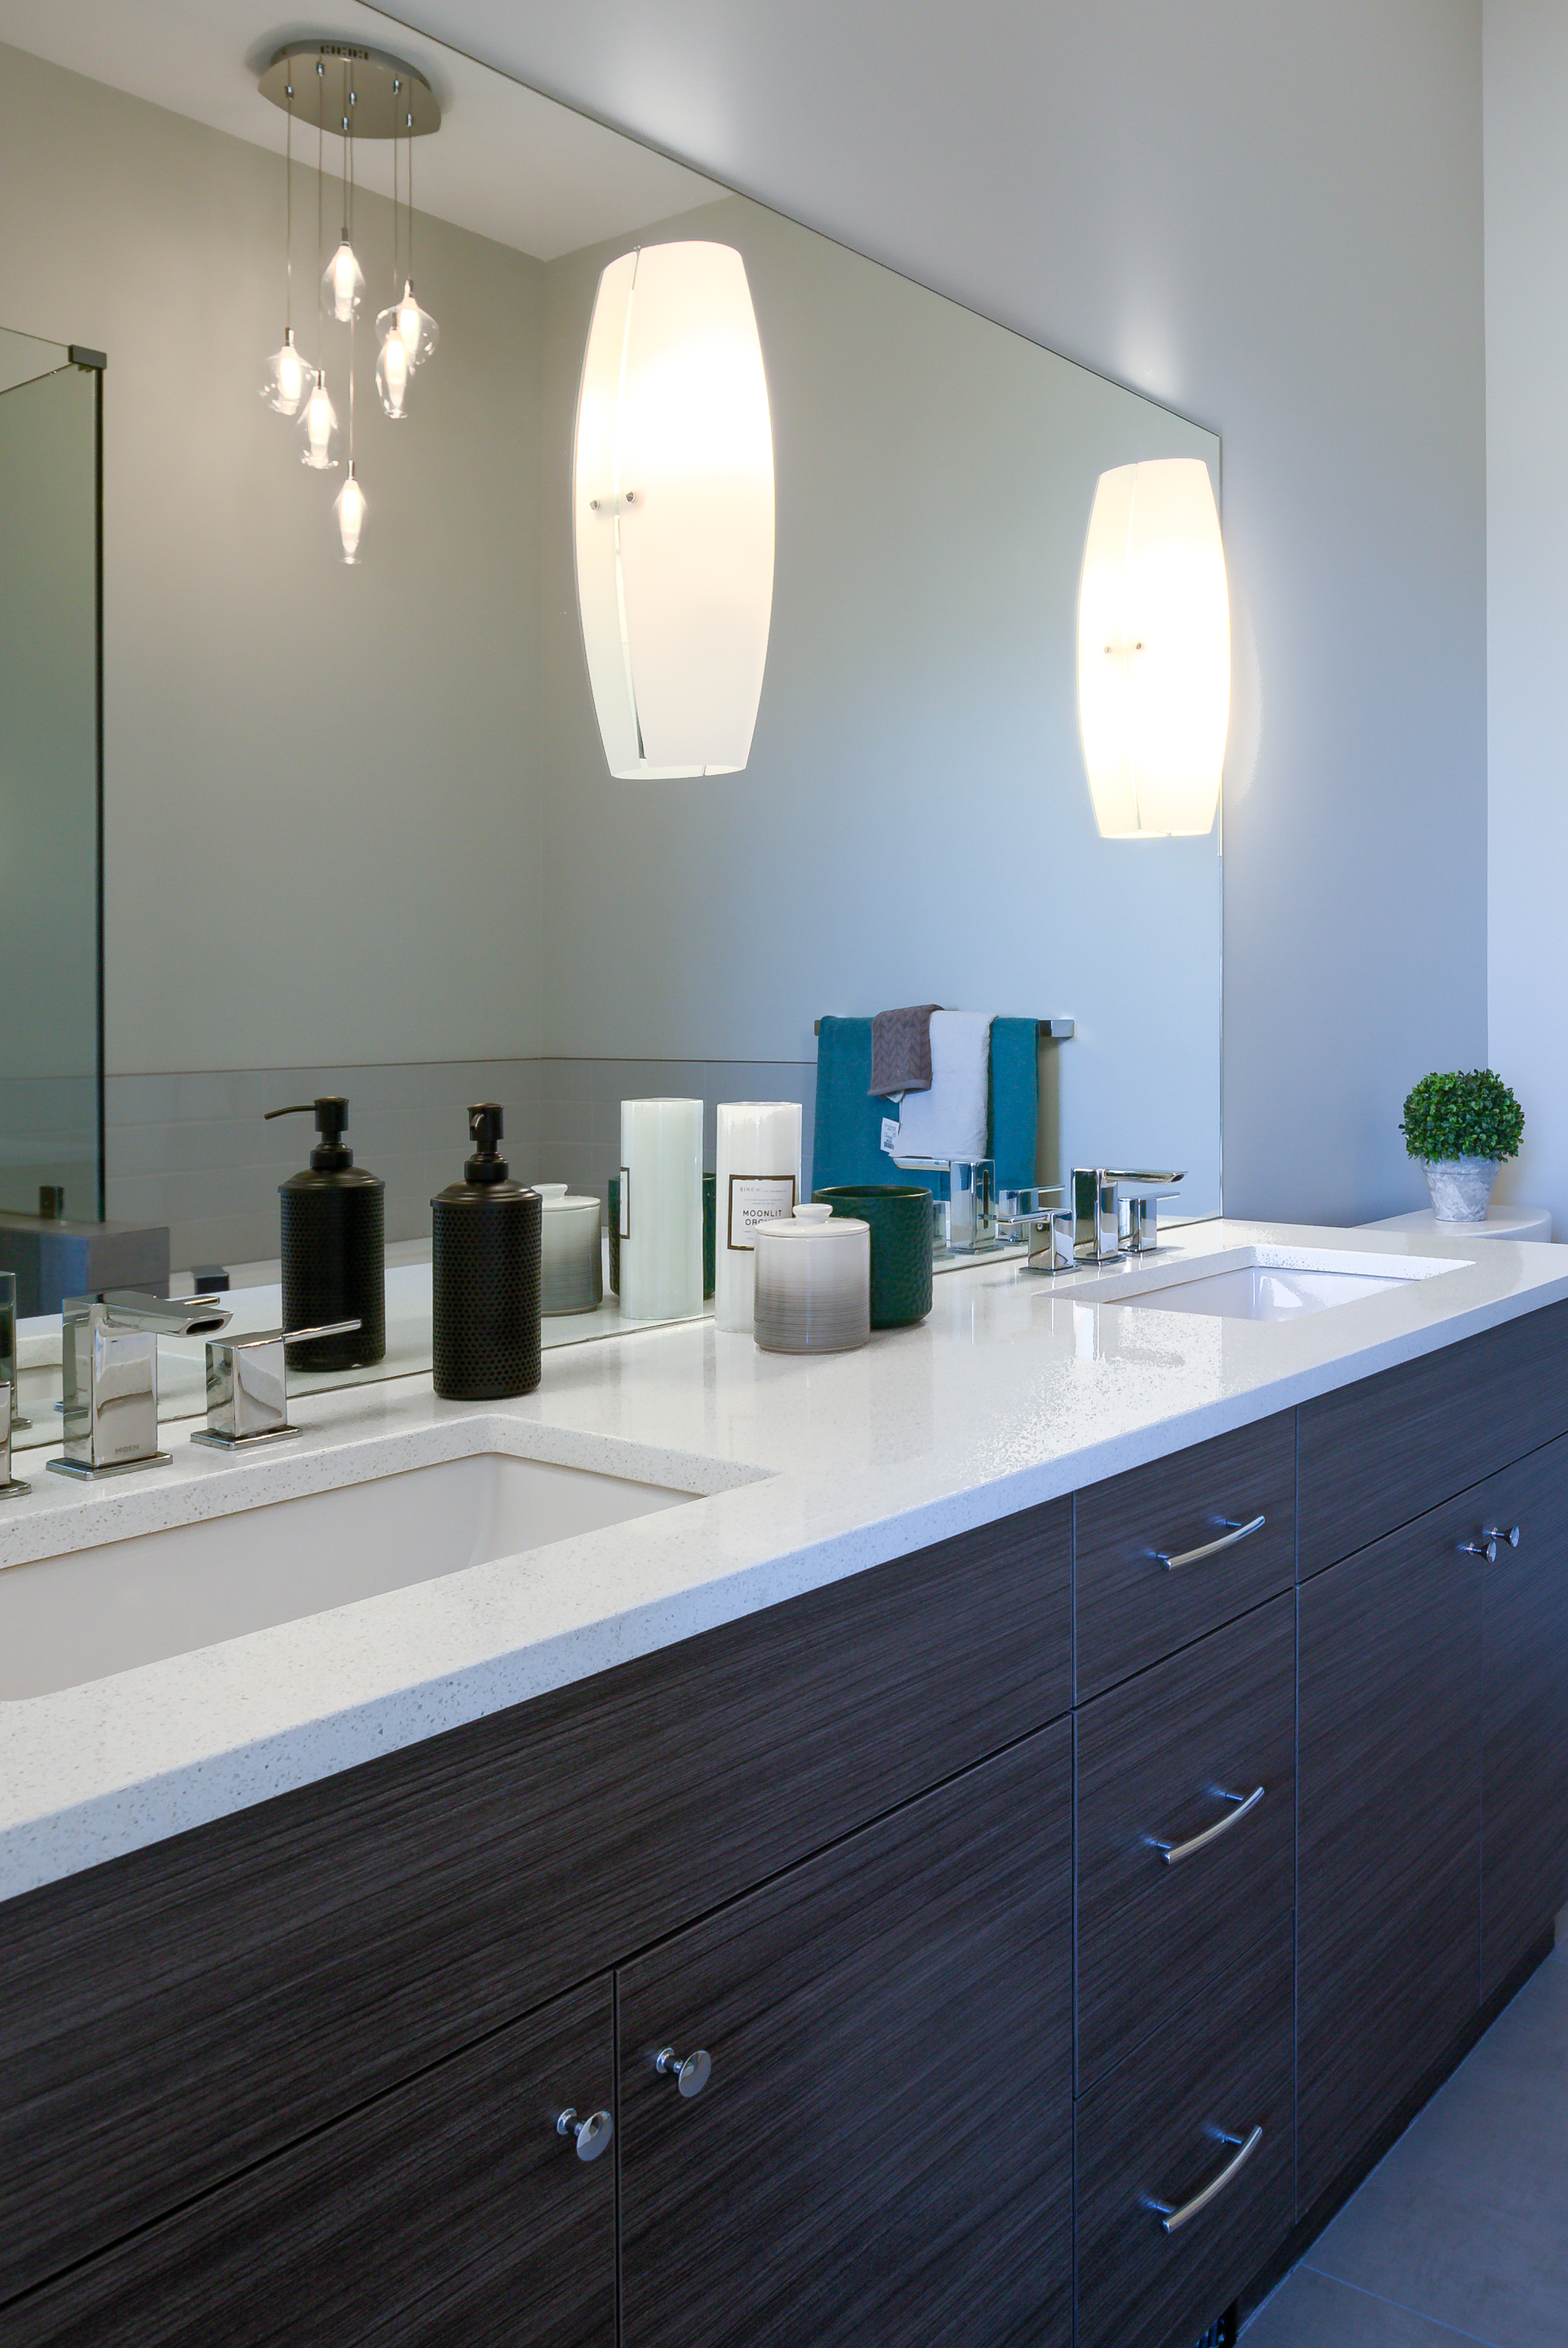 Dunbar Villas contemporary bathroom built by Impact Builders